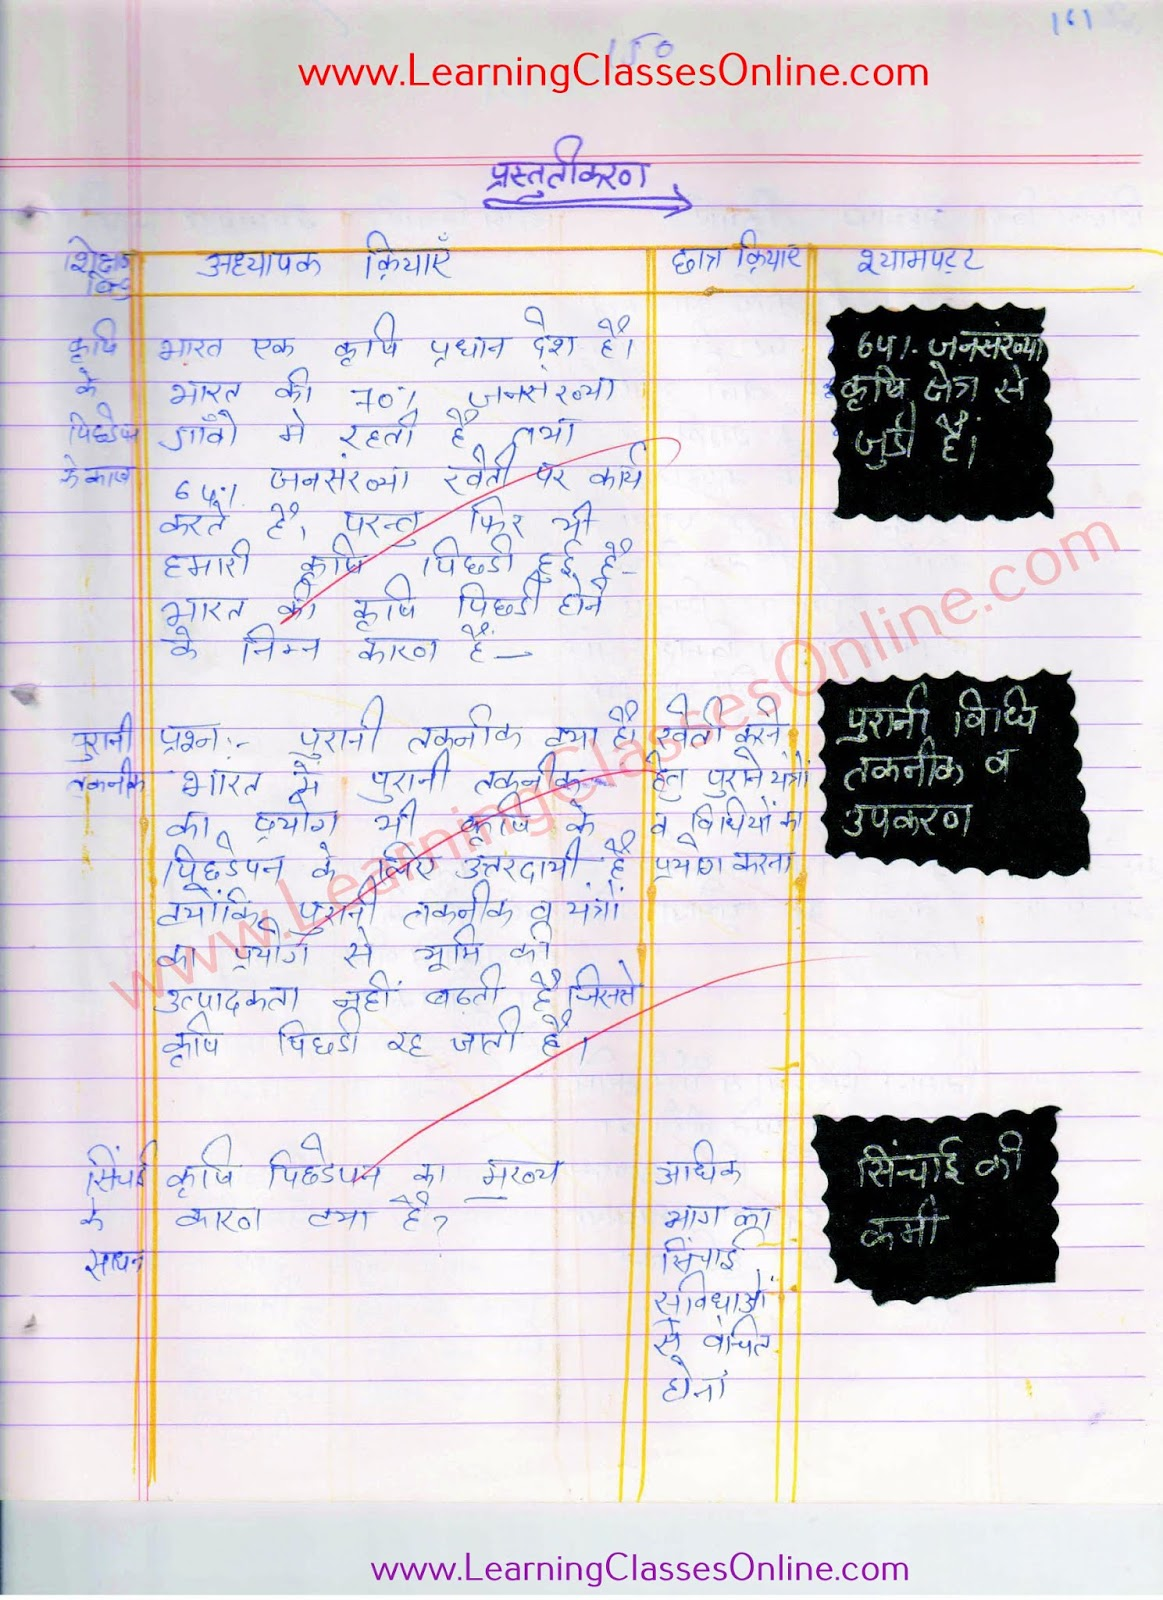 agriculture class 10 economics lesson plan in hindi